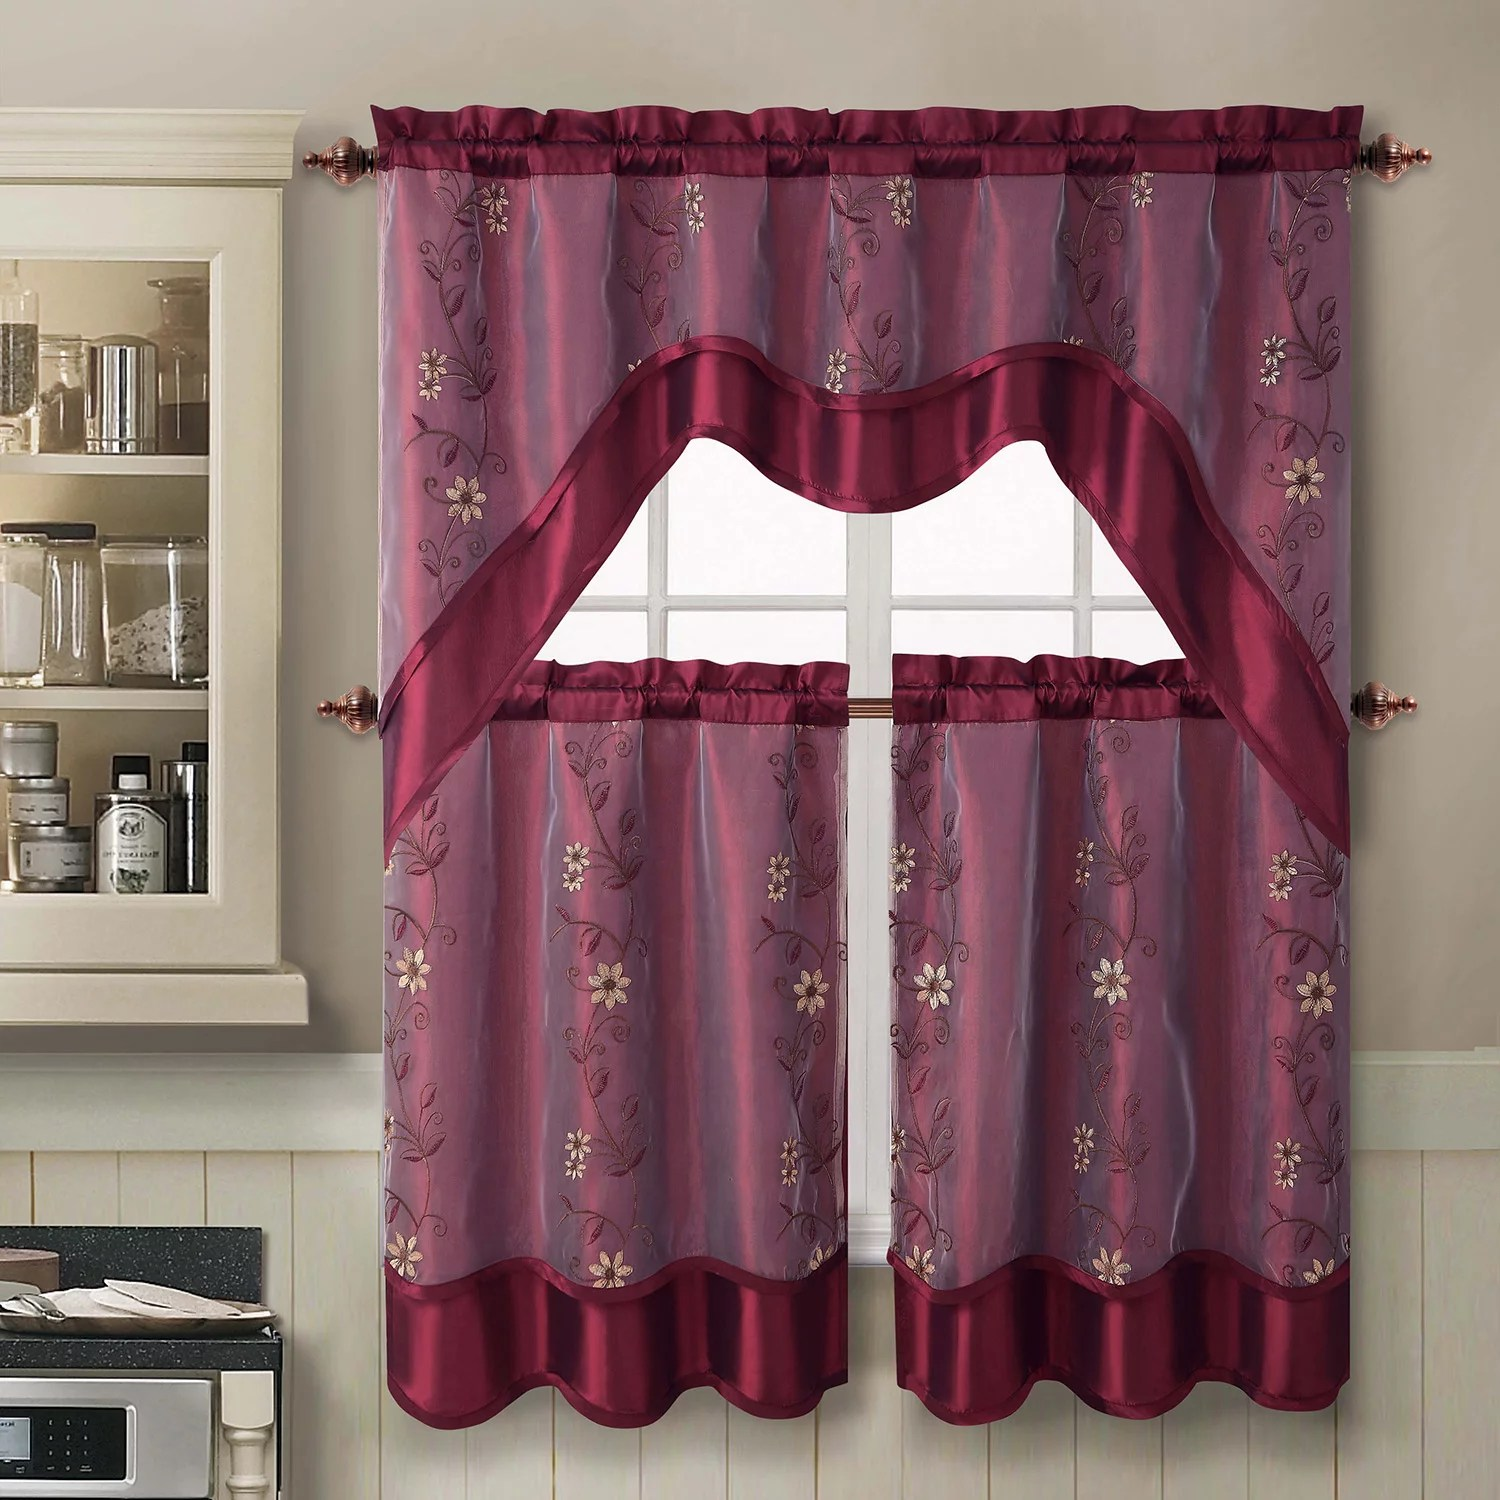 VCNY Daphne 3 Pc Swag Tier Kitchen Curtain Set